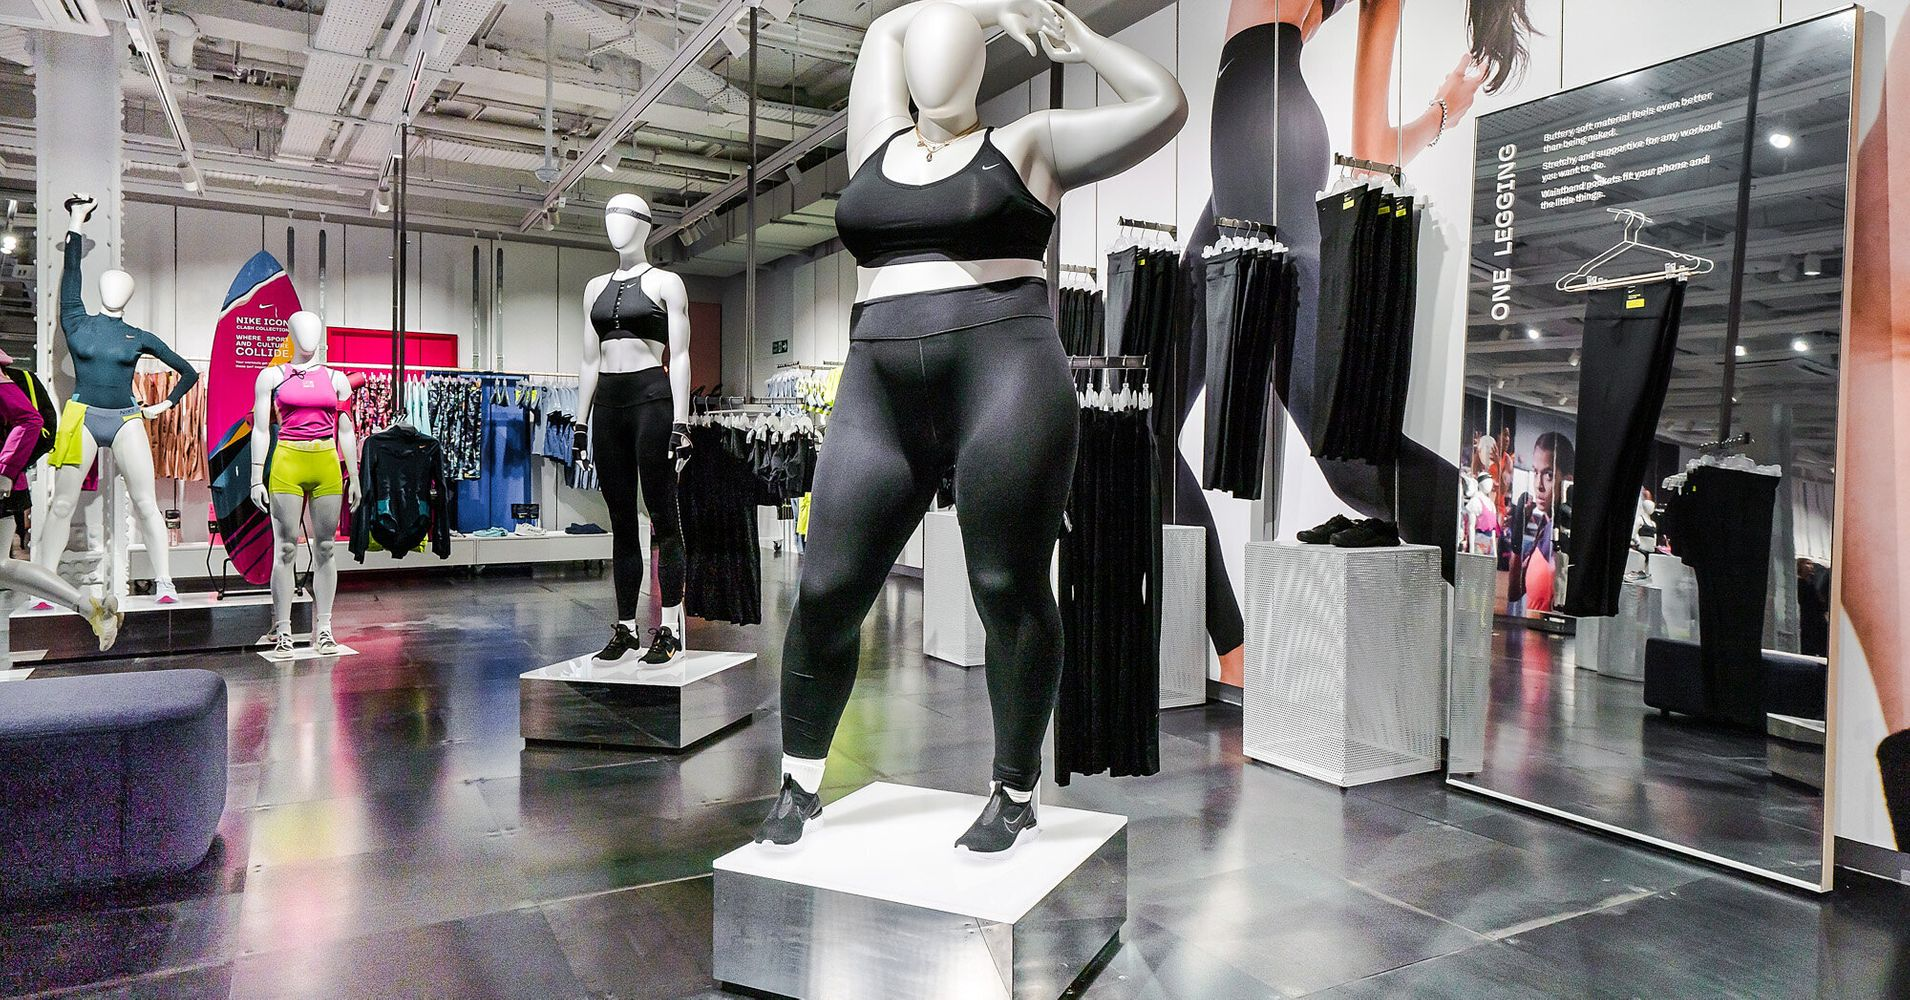 952c89c403572 Telegraph's Fatphobic Take On Nike's Plus-Size Mannequins Receives Backlash    HuffPost Life